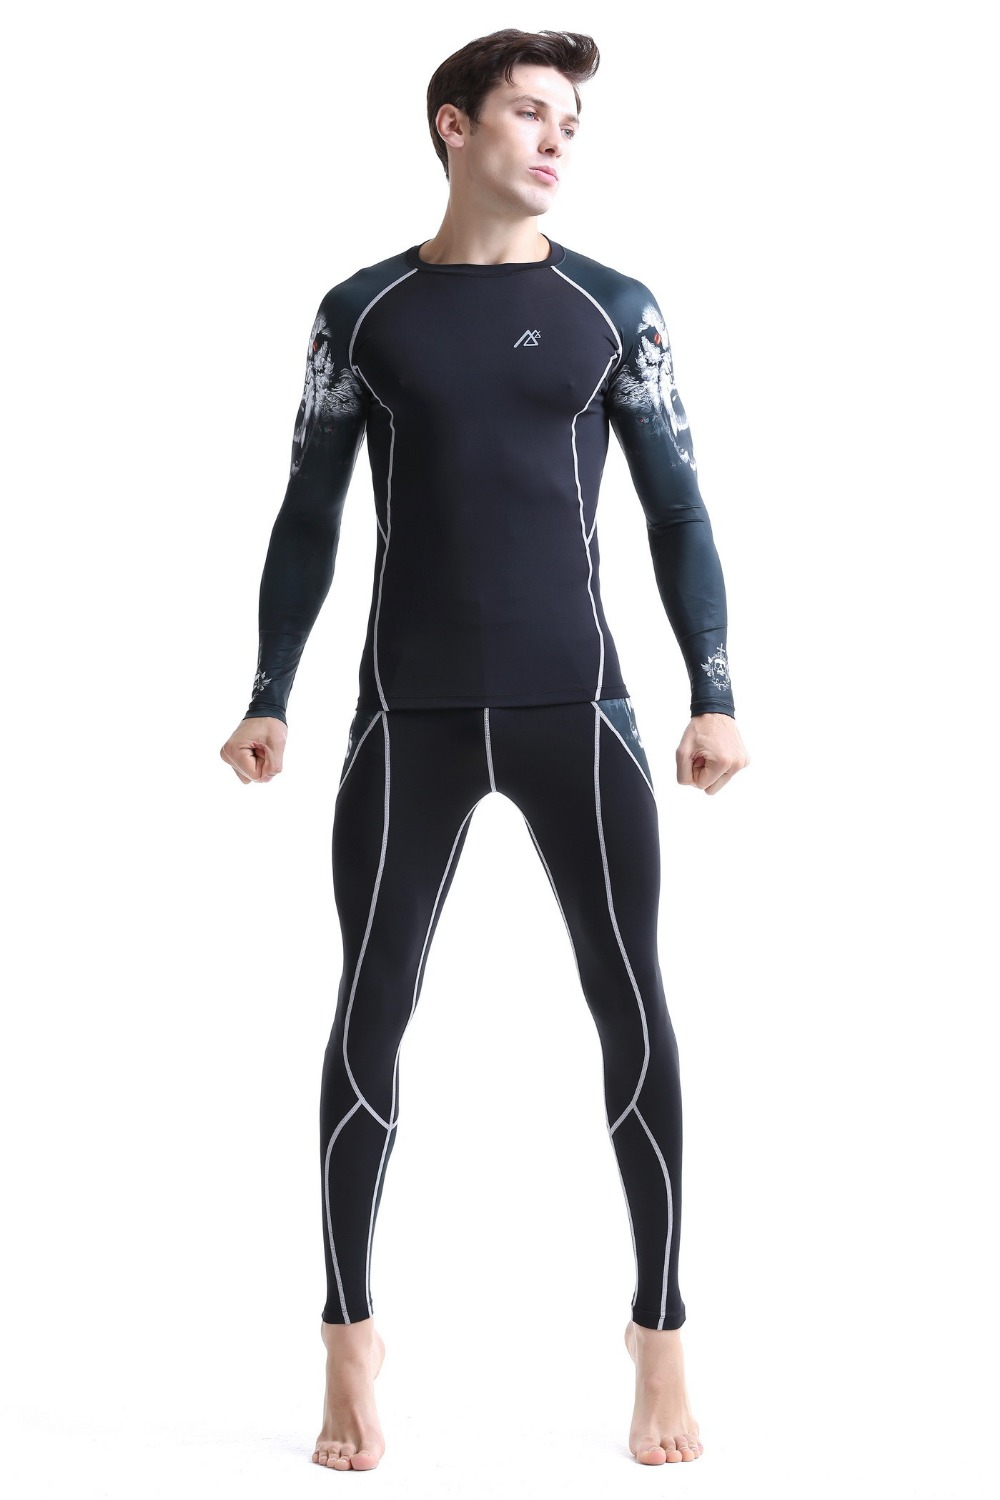 plus size best mens suit riding animals runnings sets suits tiger head long sleeve+training pant size s-4xl